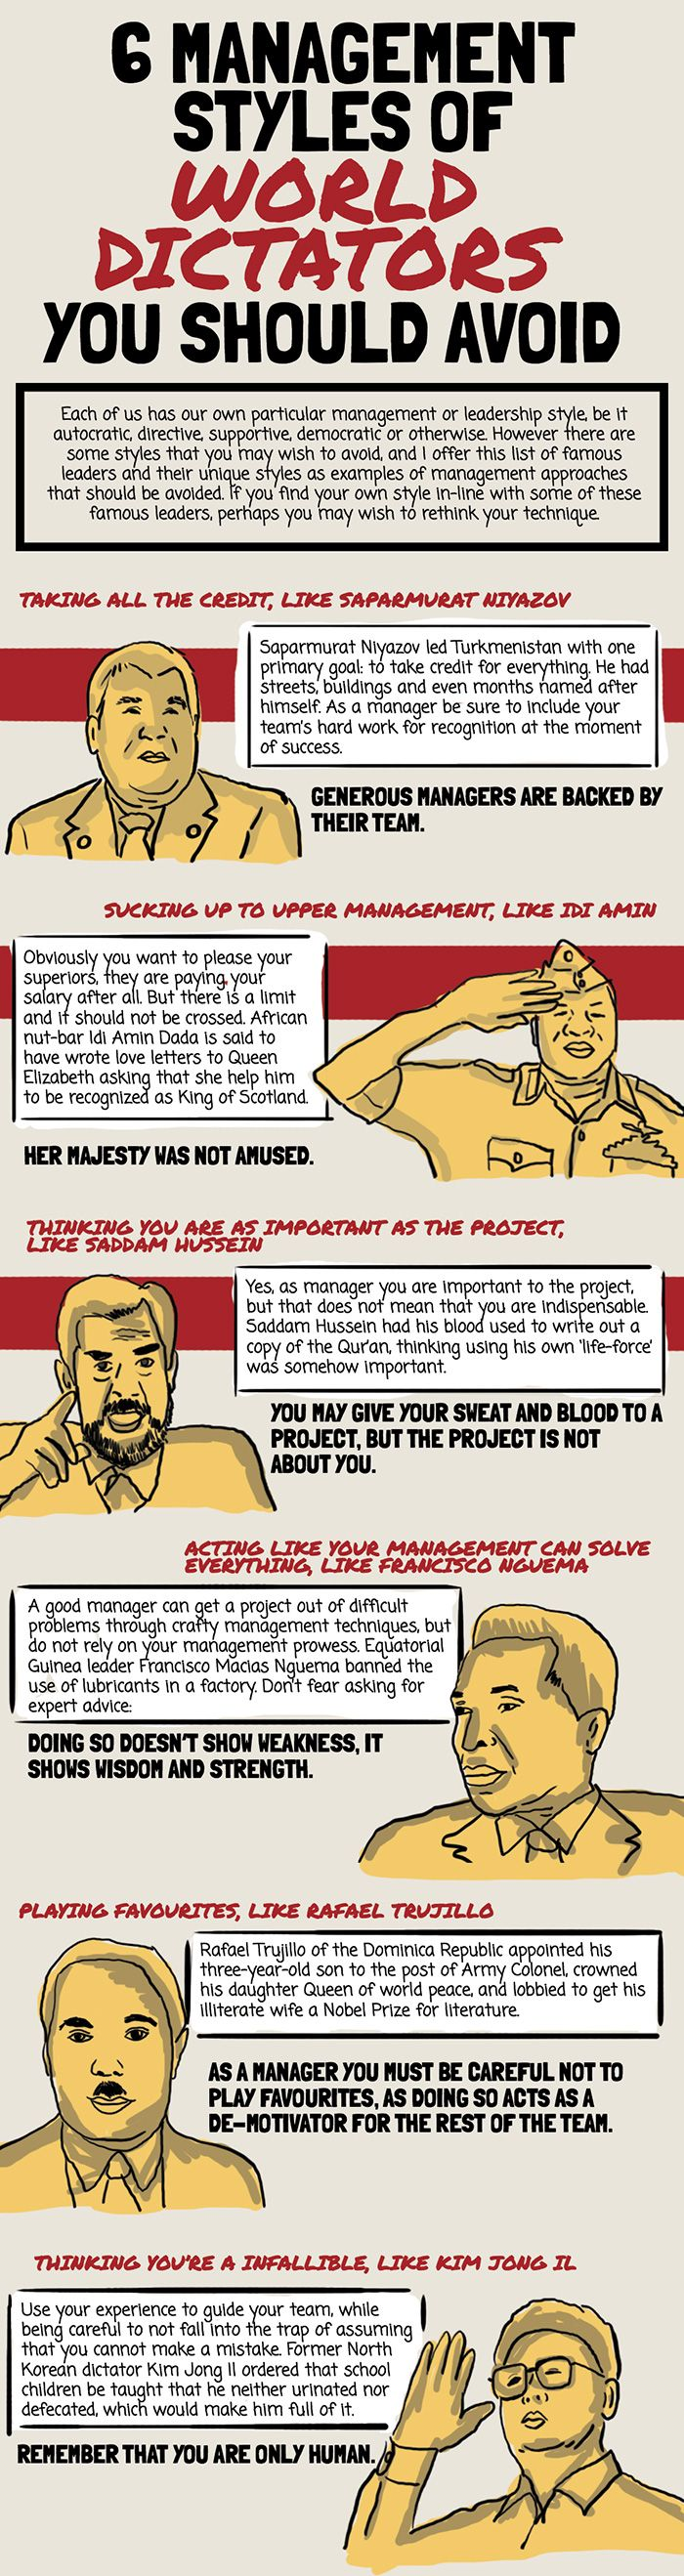 6 management styles of world dictators you should avoid